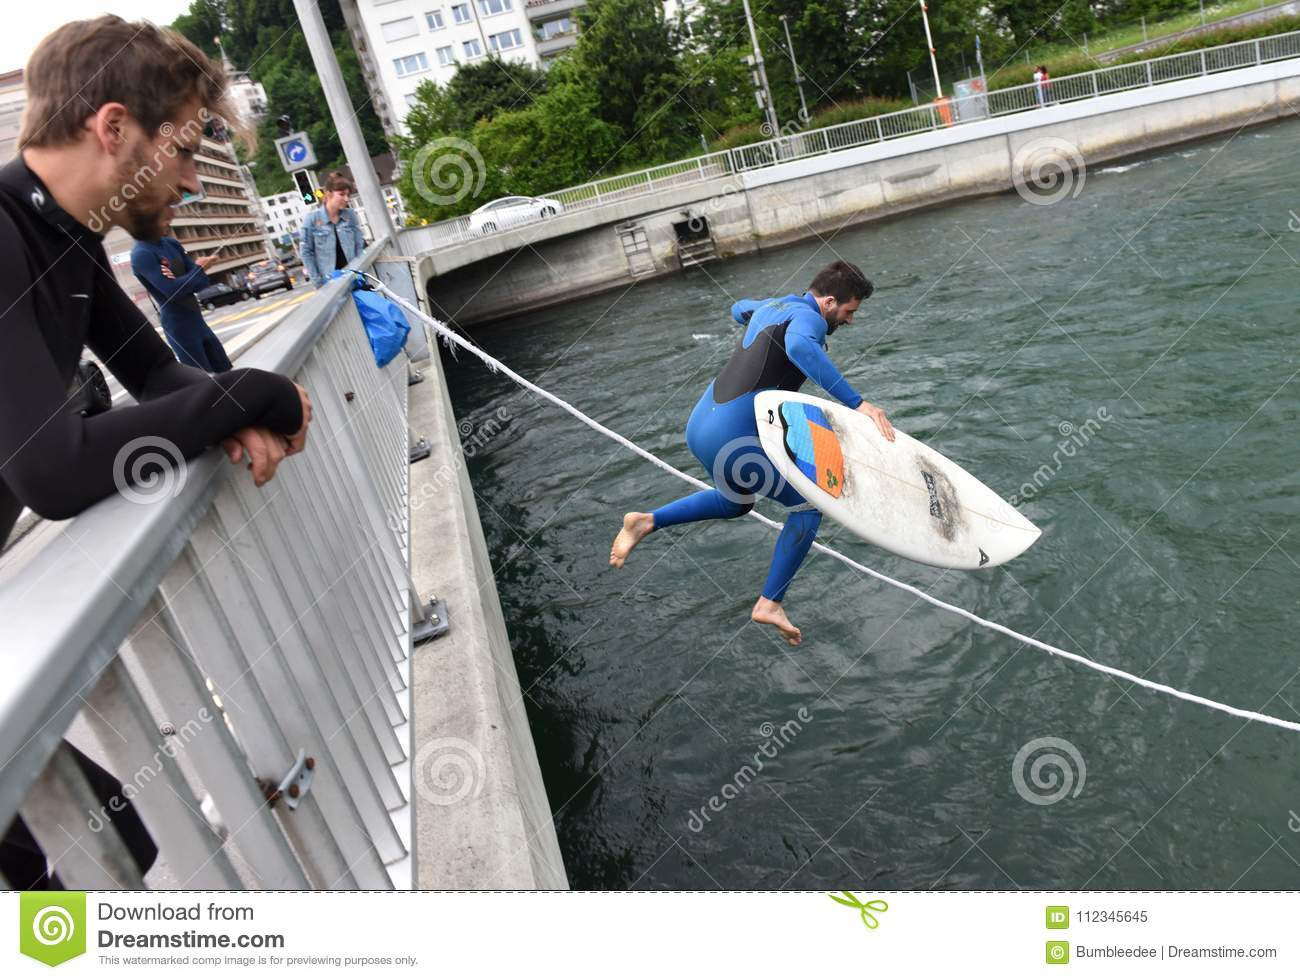 Lucerne, Switzerland - June 04, 2017: Surfer jumps from the bridge in Reuss river in Lucerne, Switzerland.